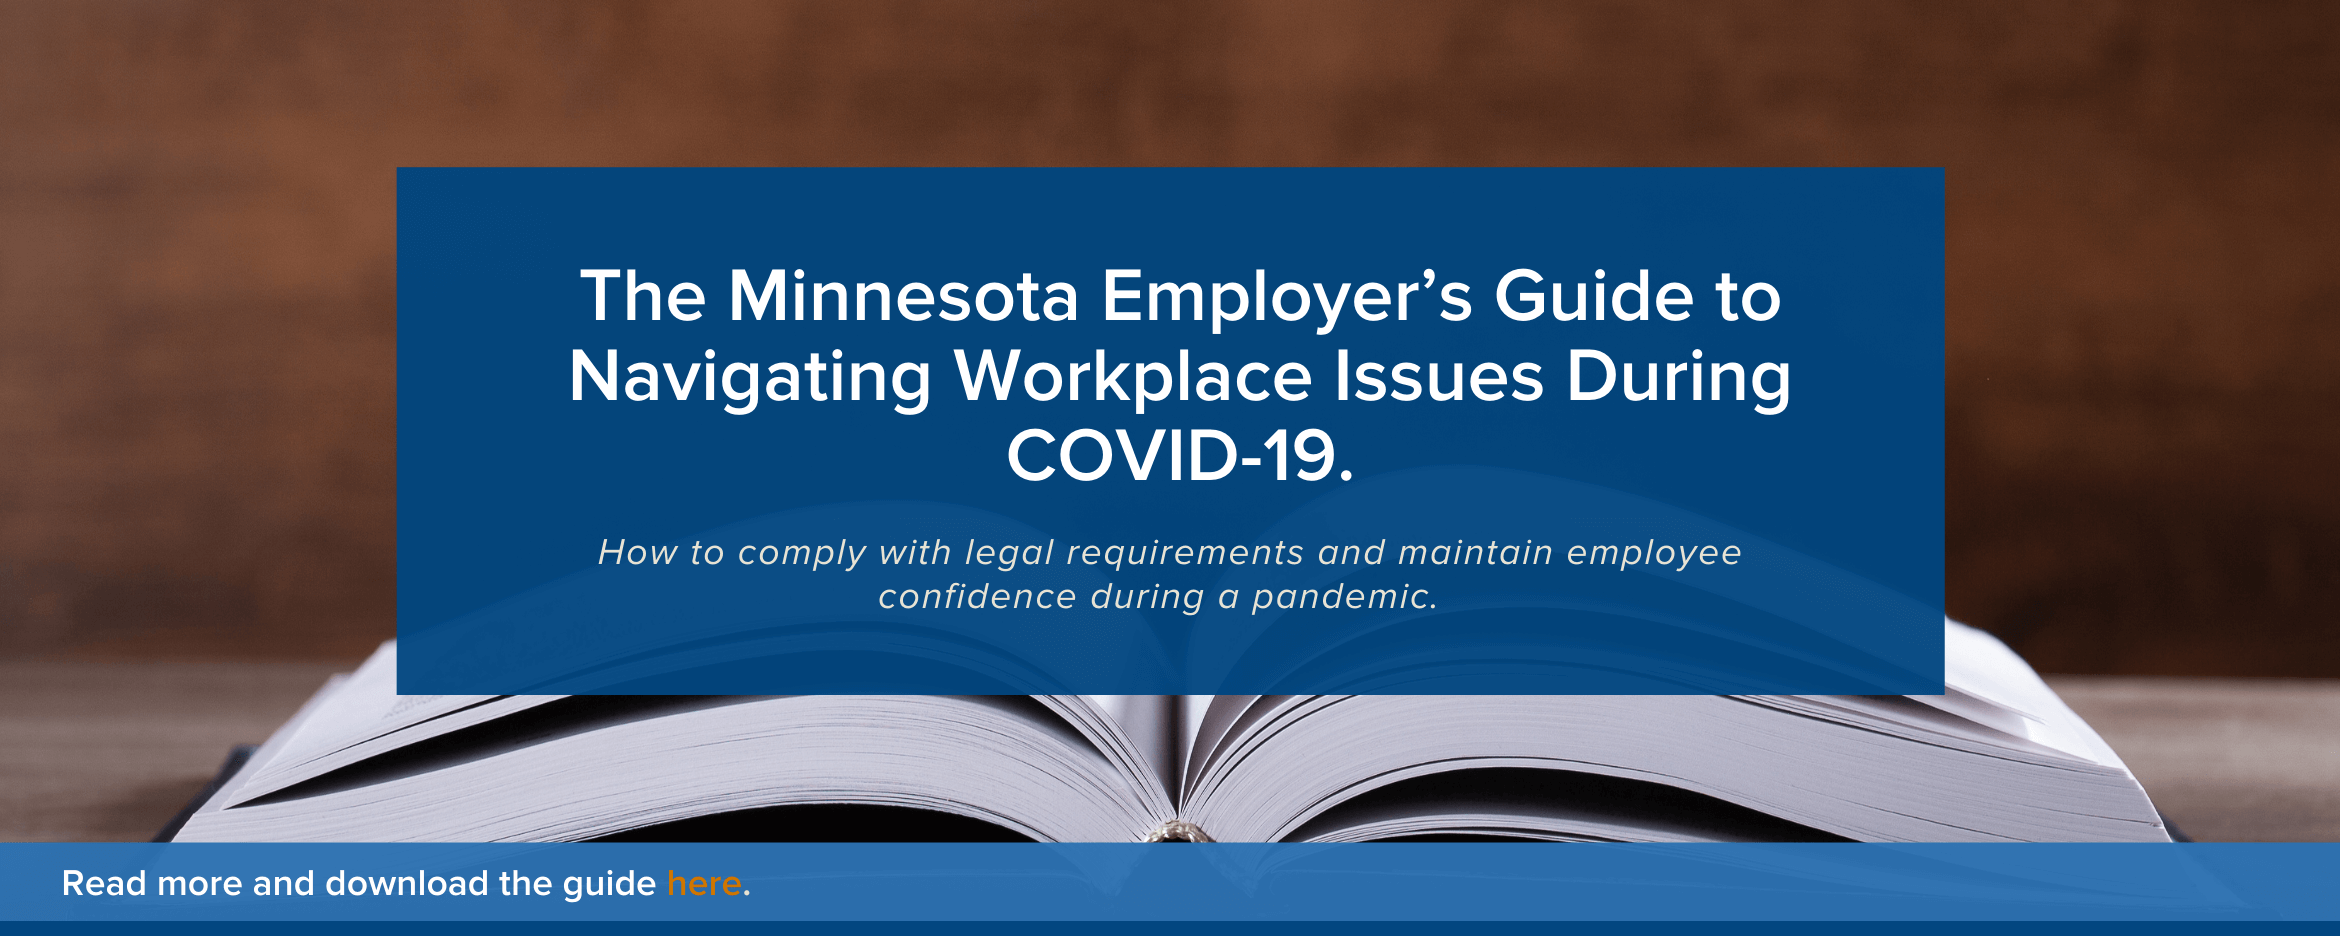 Minnesota Employers Guide